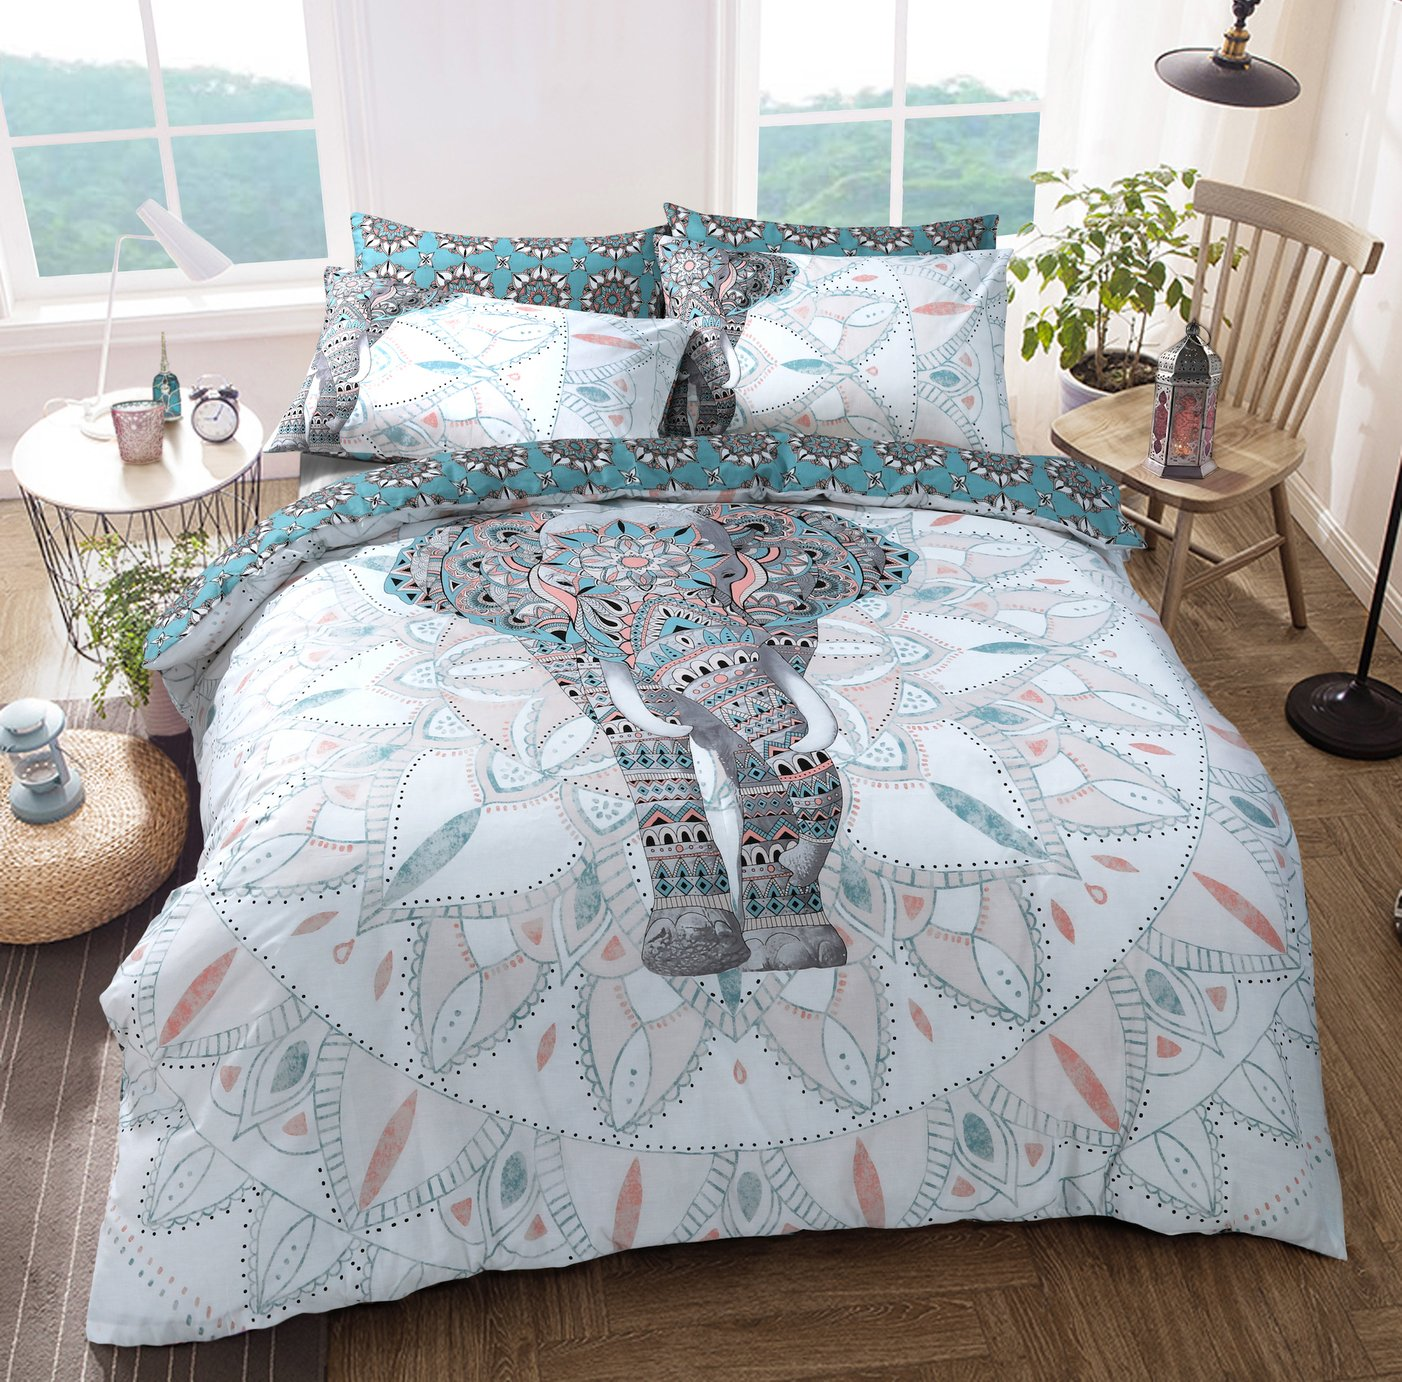 Argos Home Elephant Mandala Bedding Set - Kingsize